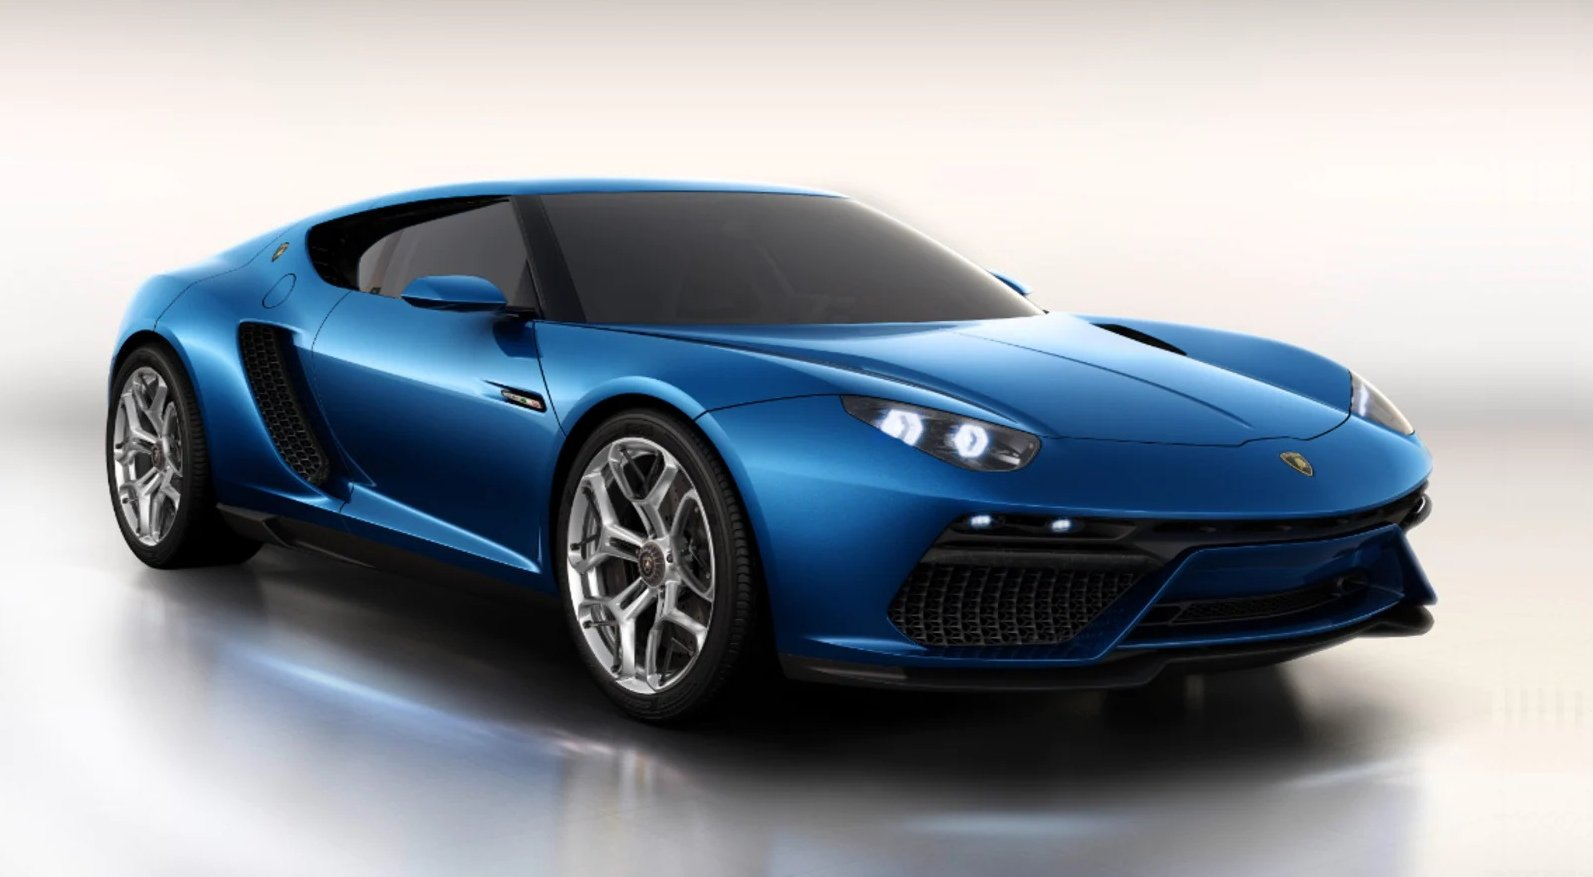 Front view of Lamborghini Asterion